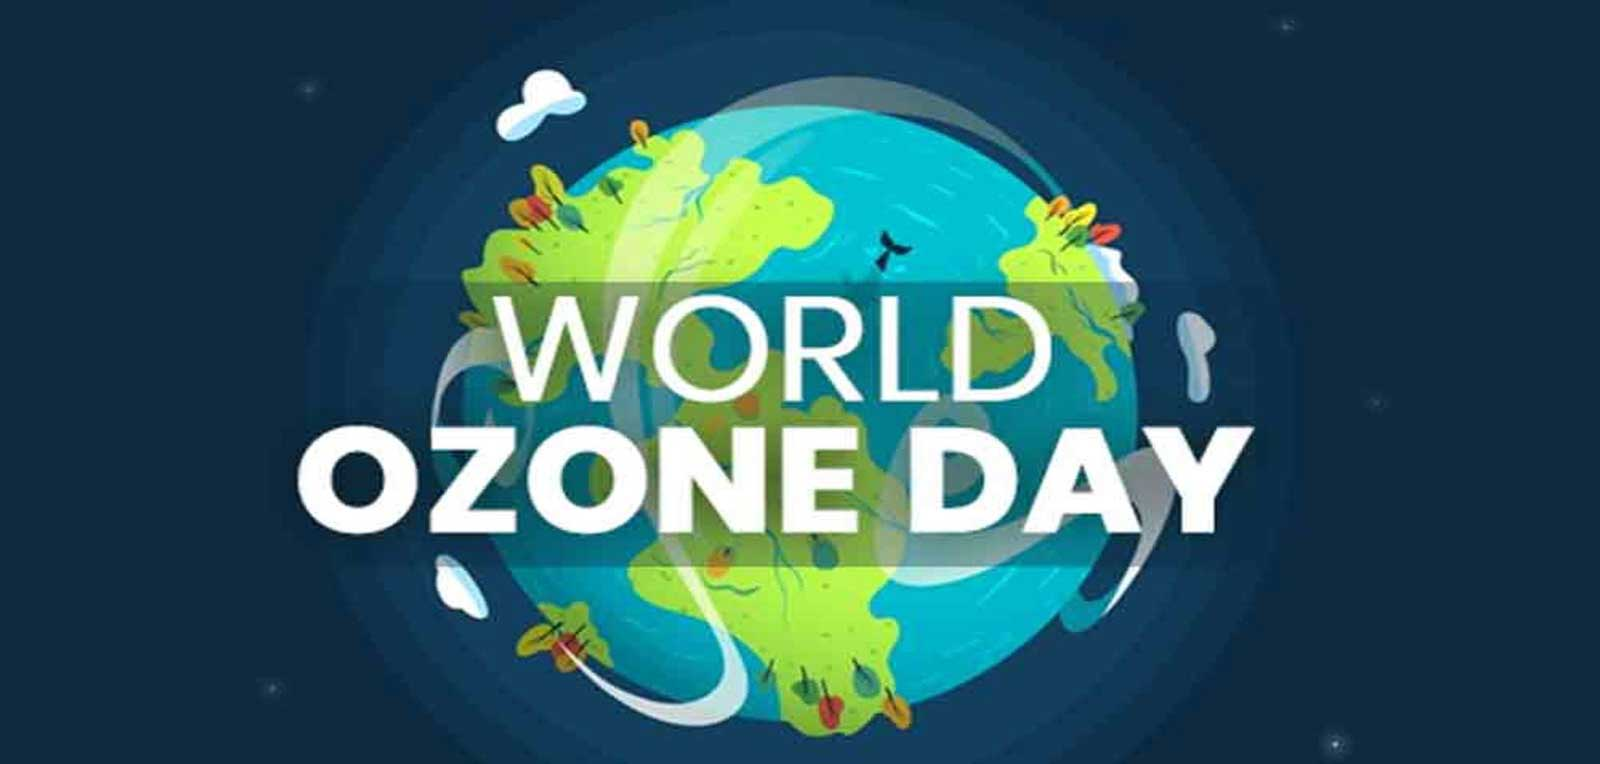 Cuba celebrates World Ozone Day